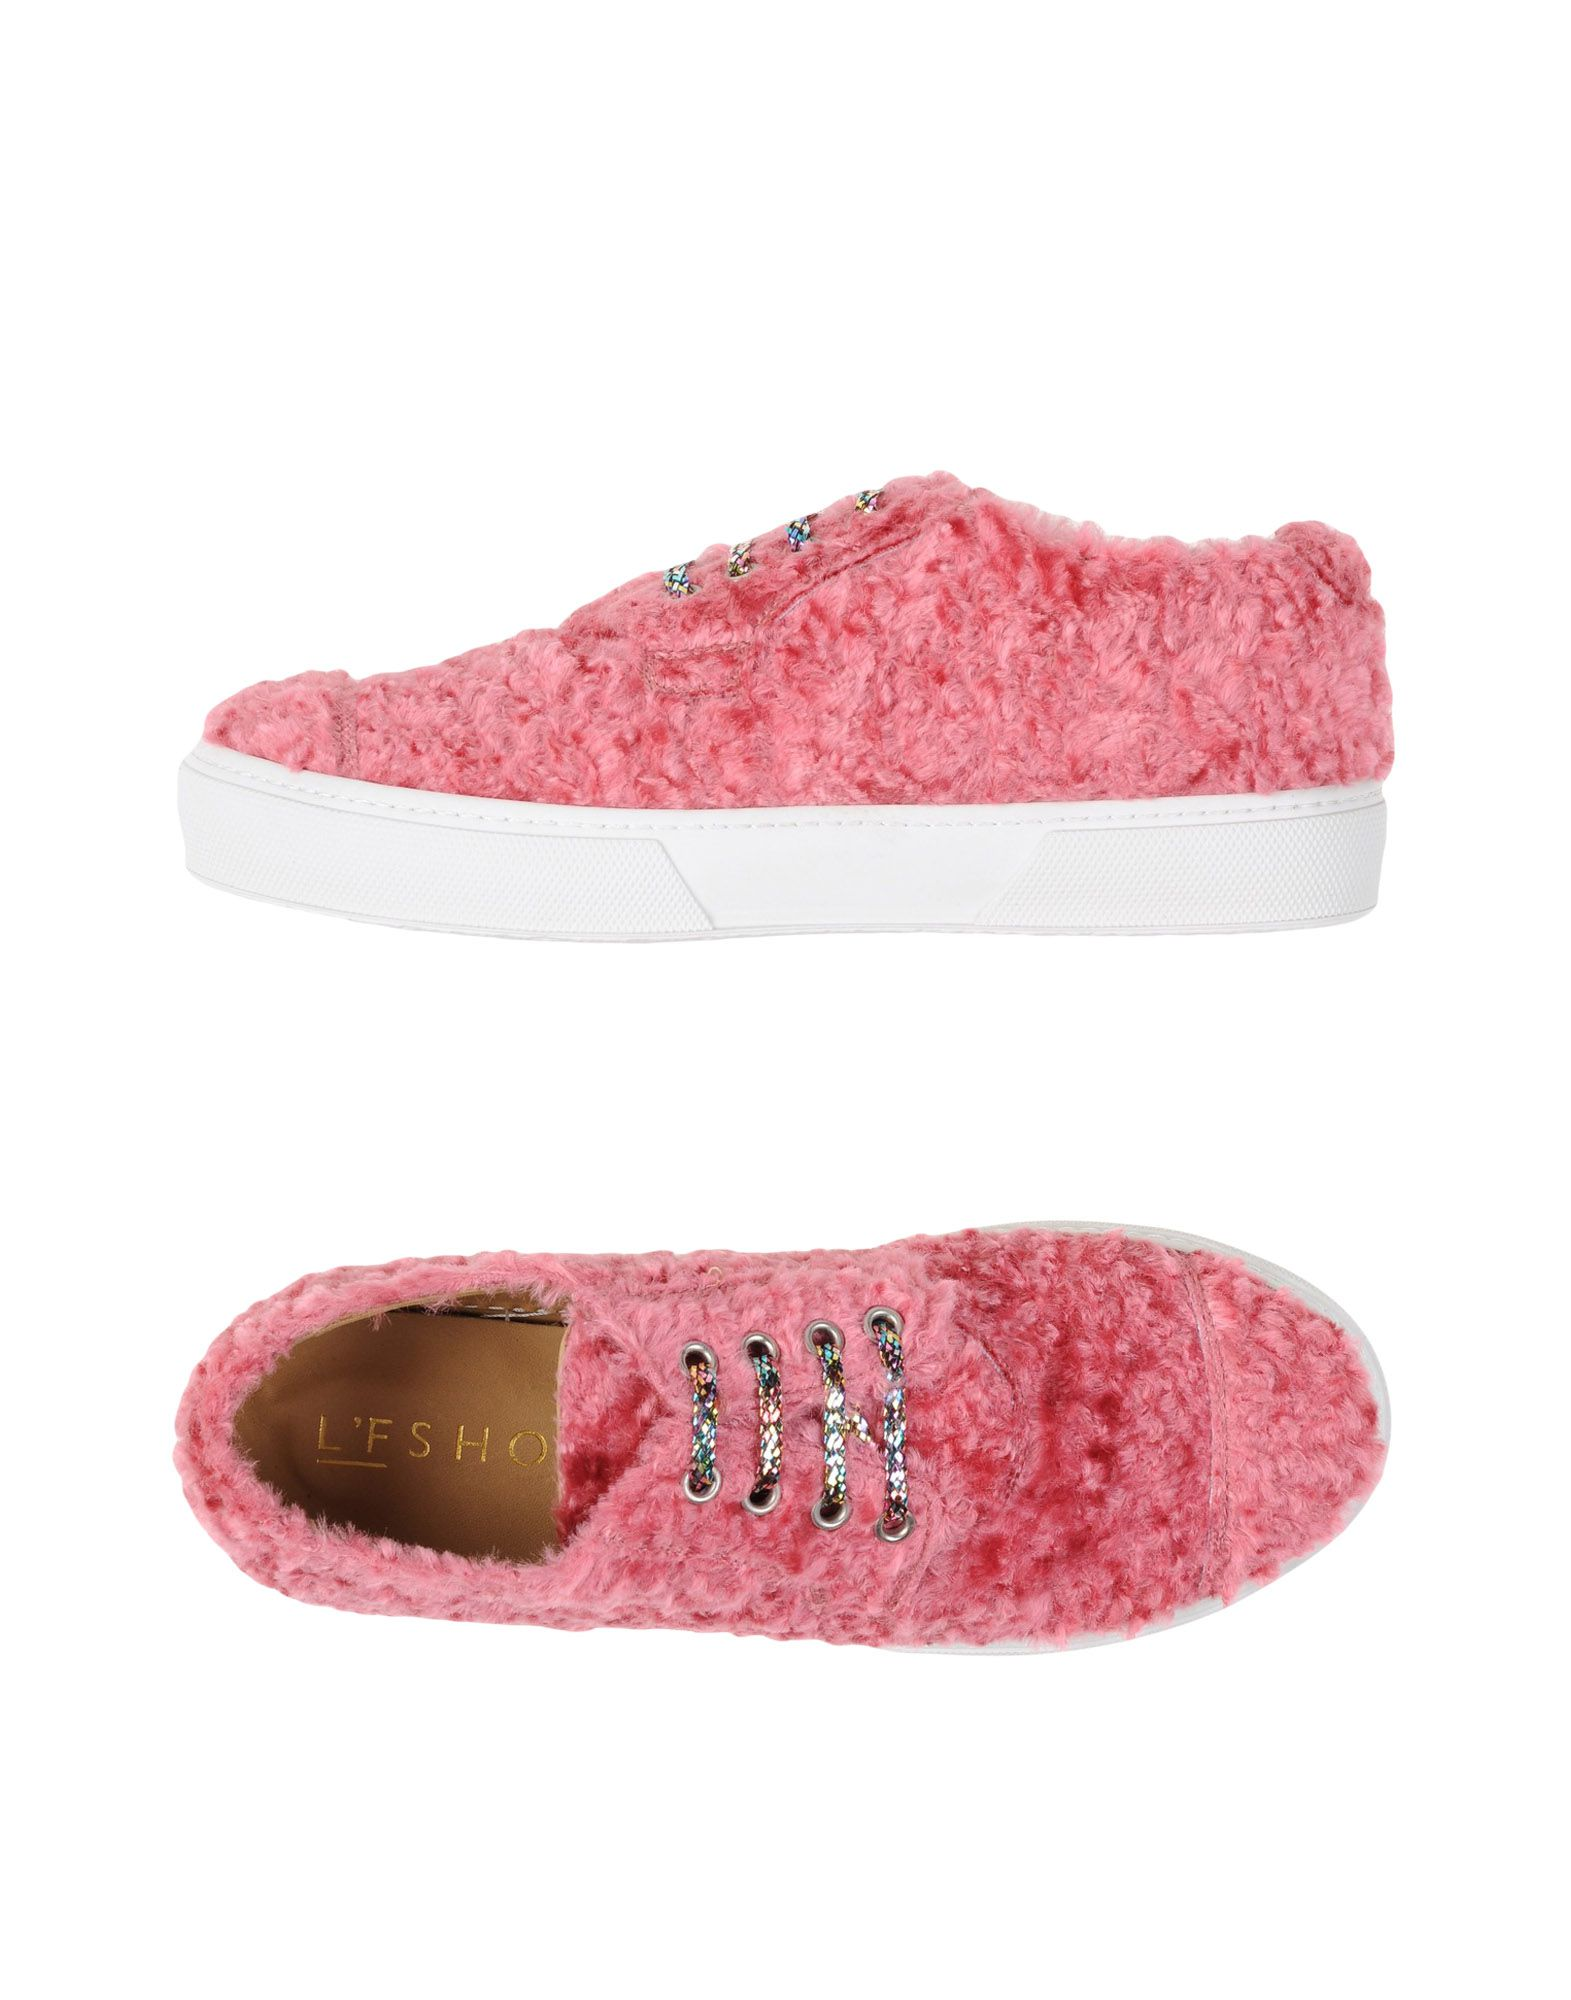 Sneakers Lf Shoes Donna - Acquista online su